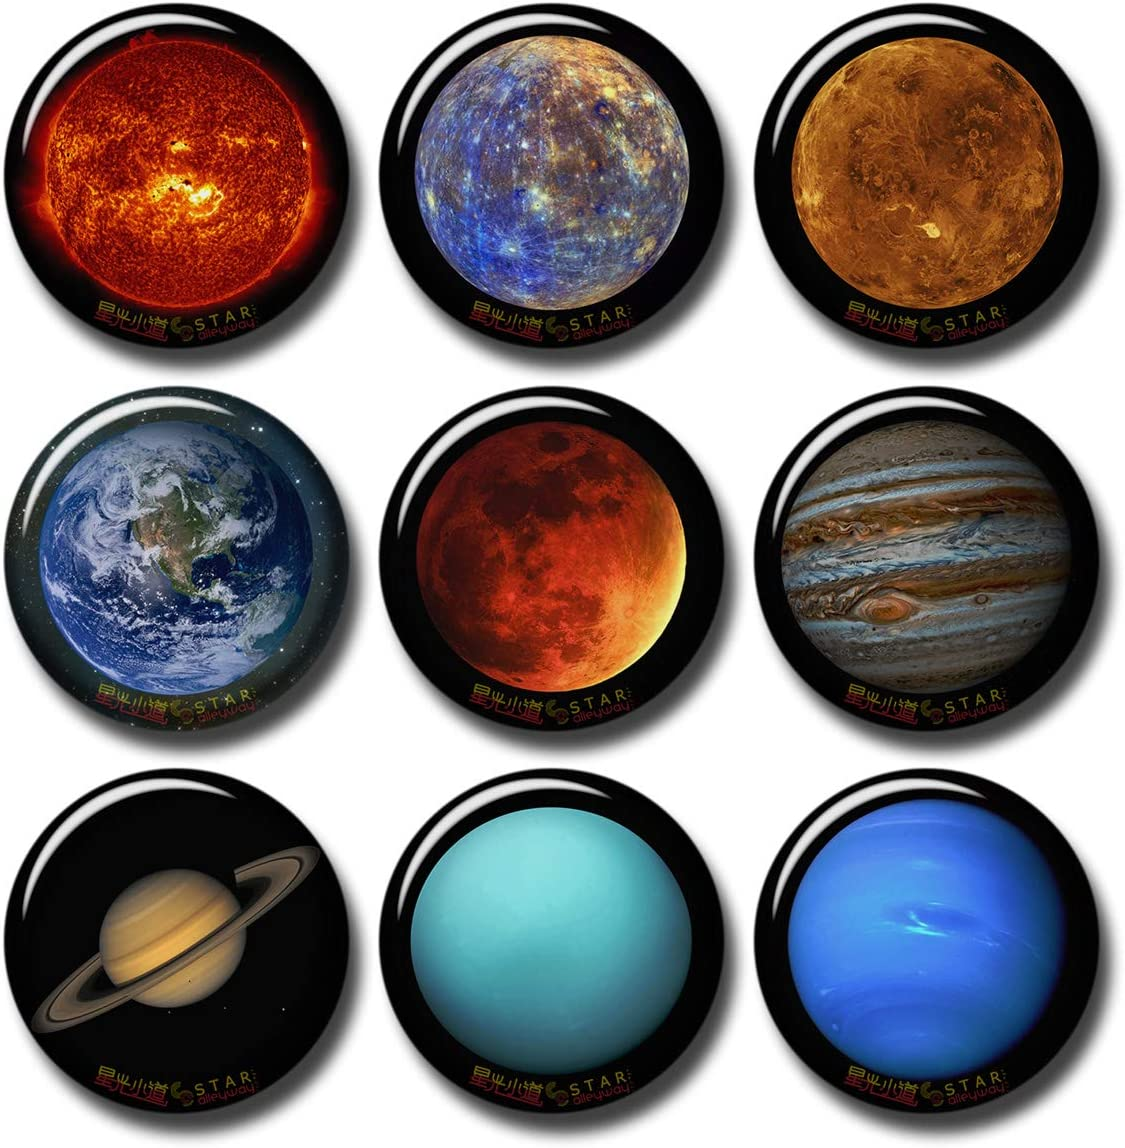 Solar System Sun 8 Planets 9 pcs Button Fridge Magnets Set Pack Astronomy Universe Stars 601-P001 Jupiter Saturn Uranus Neptune,Home Kitchen Refrigerator Decor Gifts (Round 1.5 inch|3.7cm)